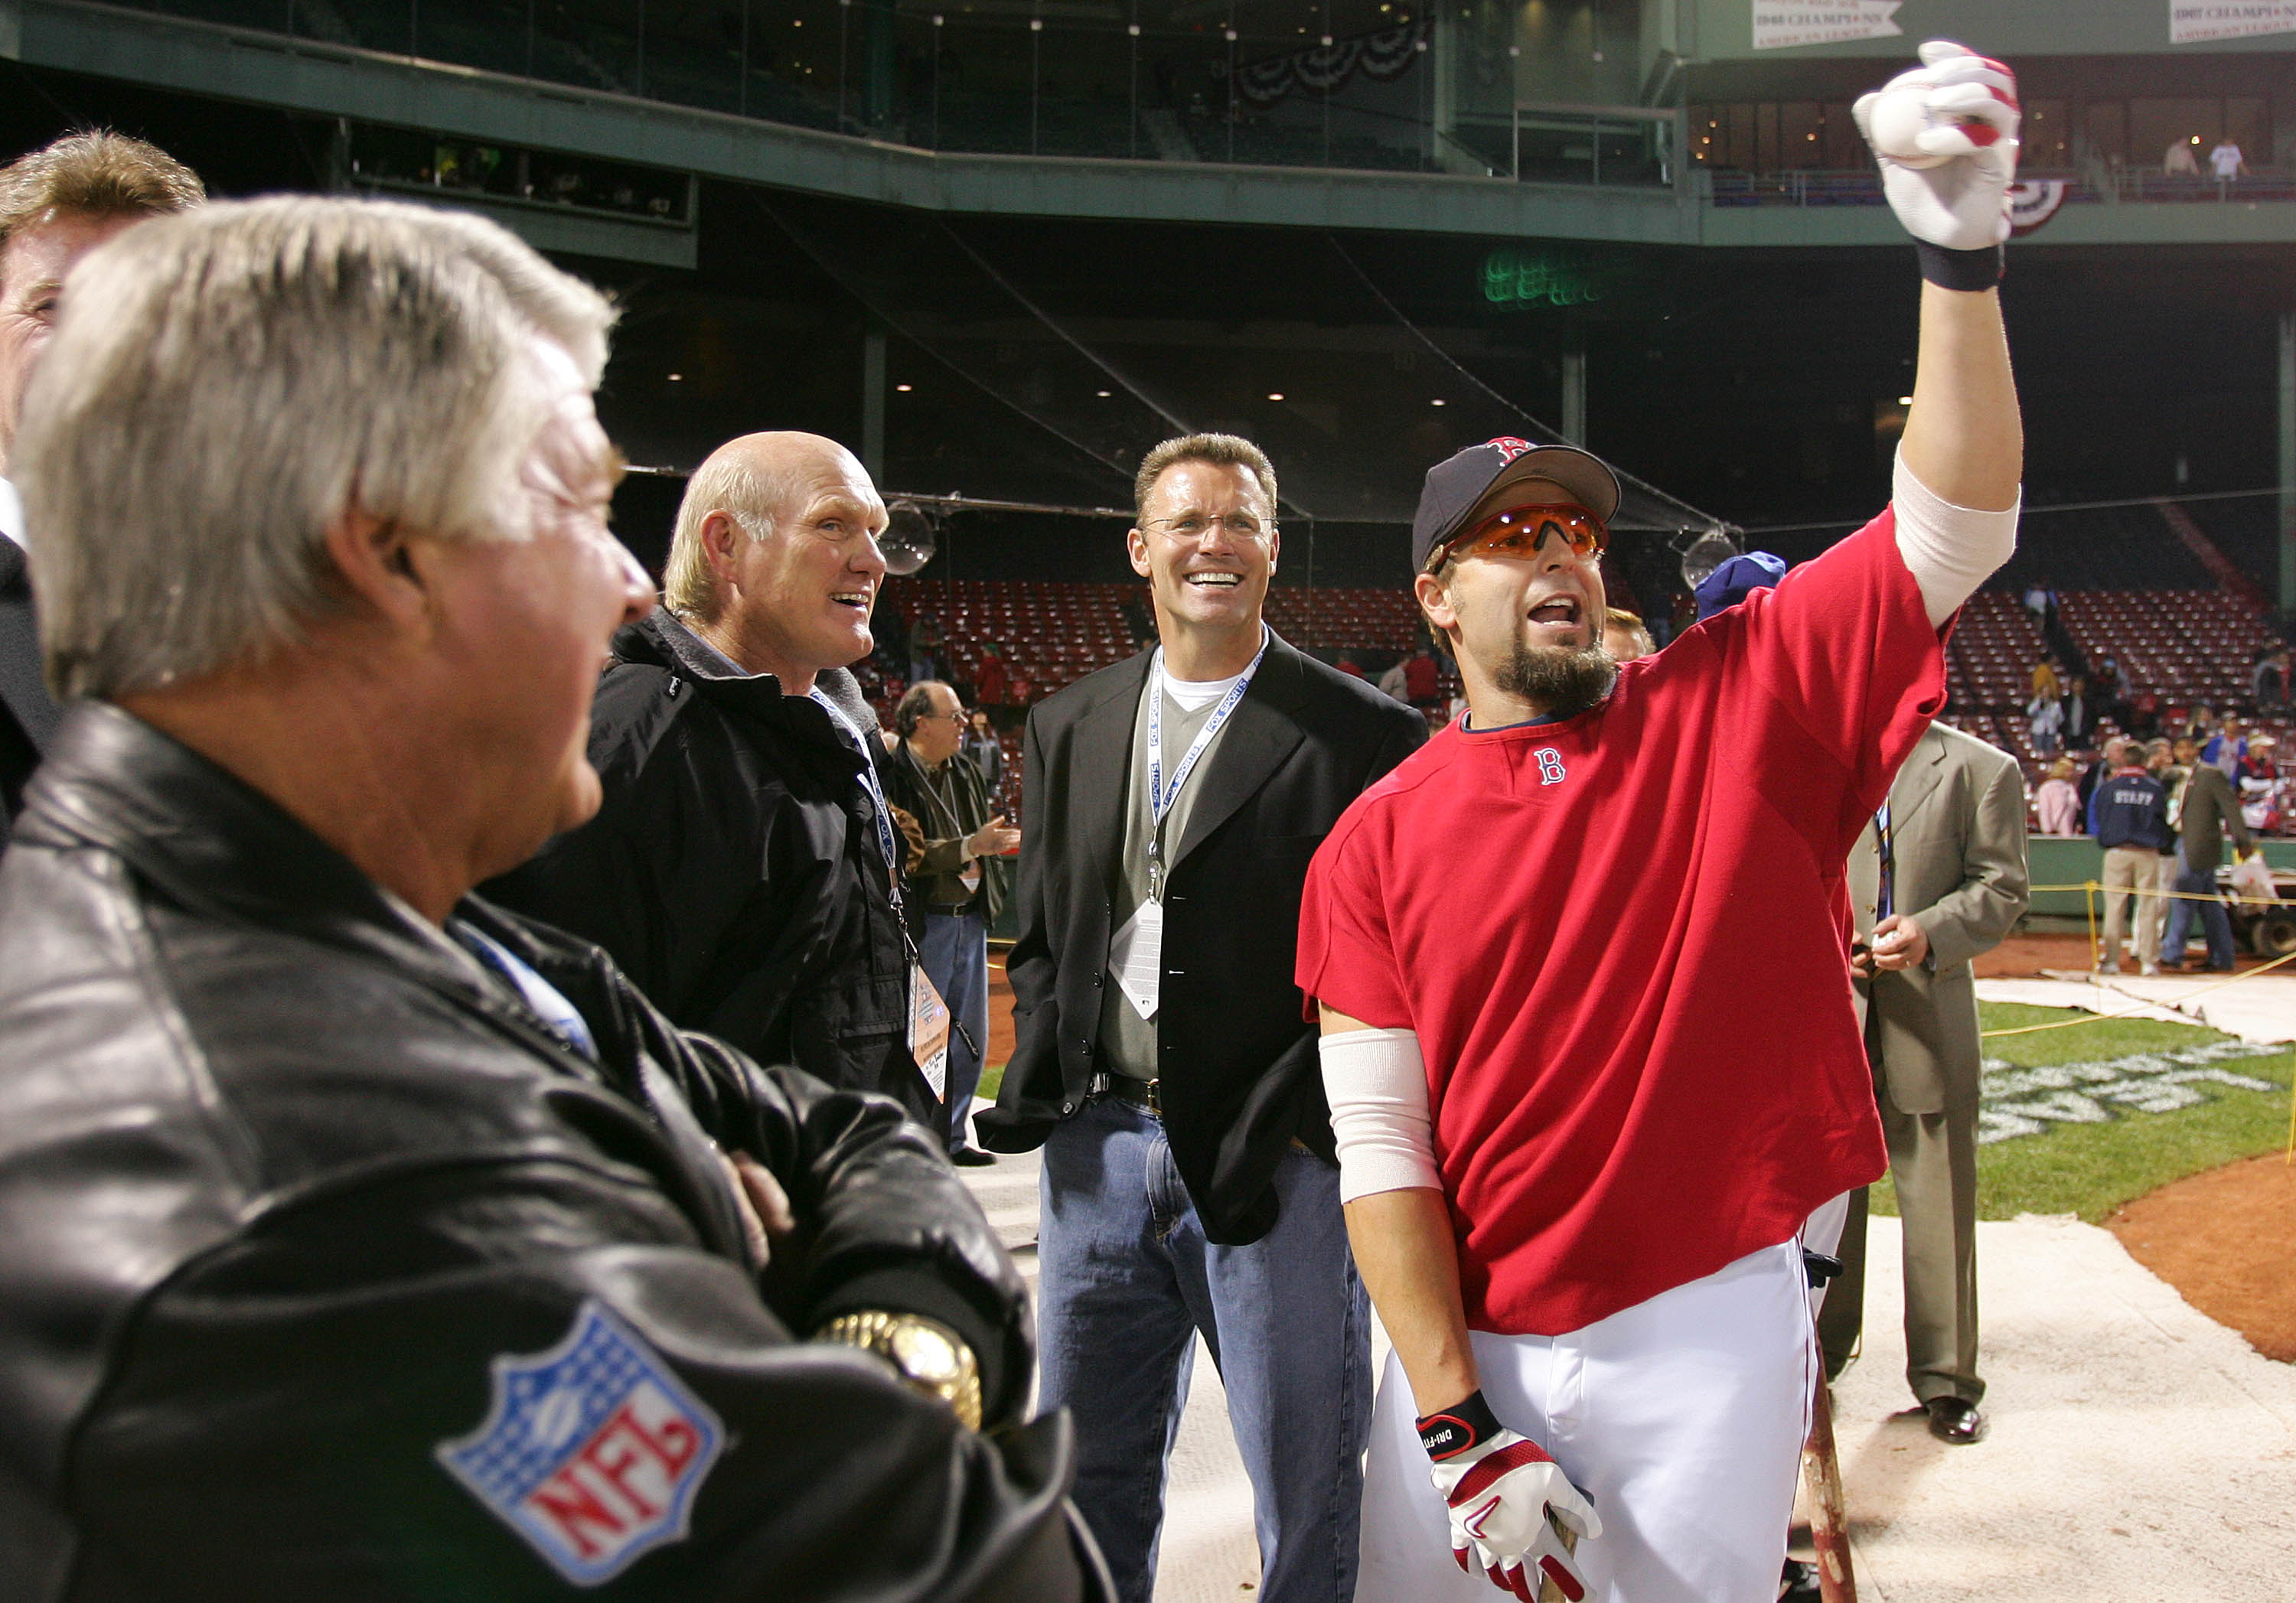 BOSTON - OCTOBER 16:  Kevin Millar #15 of the Boston Red Sox shares a laugh with Fox NFL television sportscasters, from left, Jimmy Johnson, Terry Bradshaw, and Howie Long before game three of the American League Championship Series against the New York Y